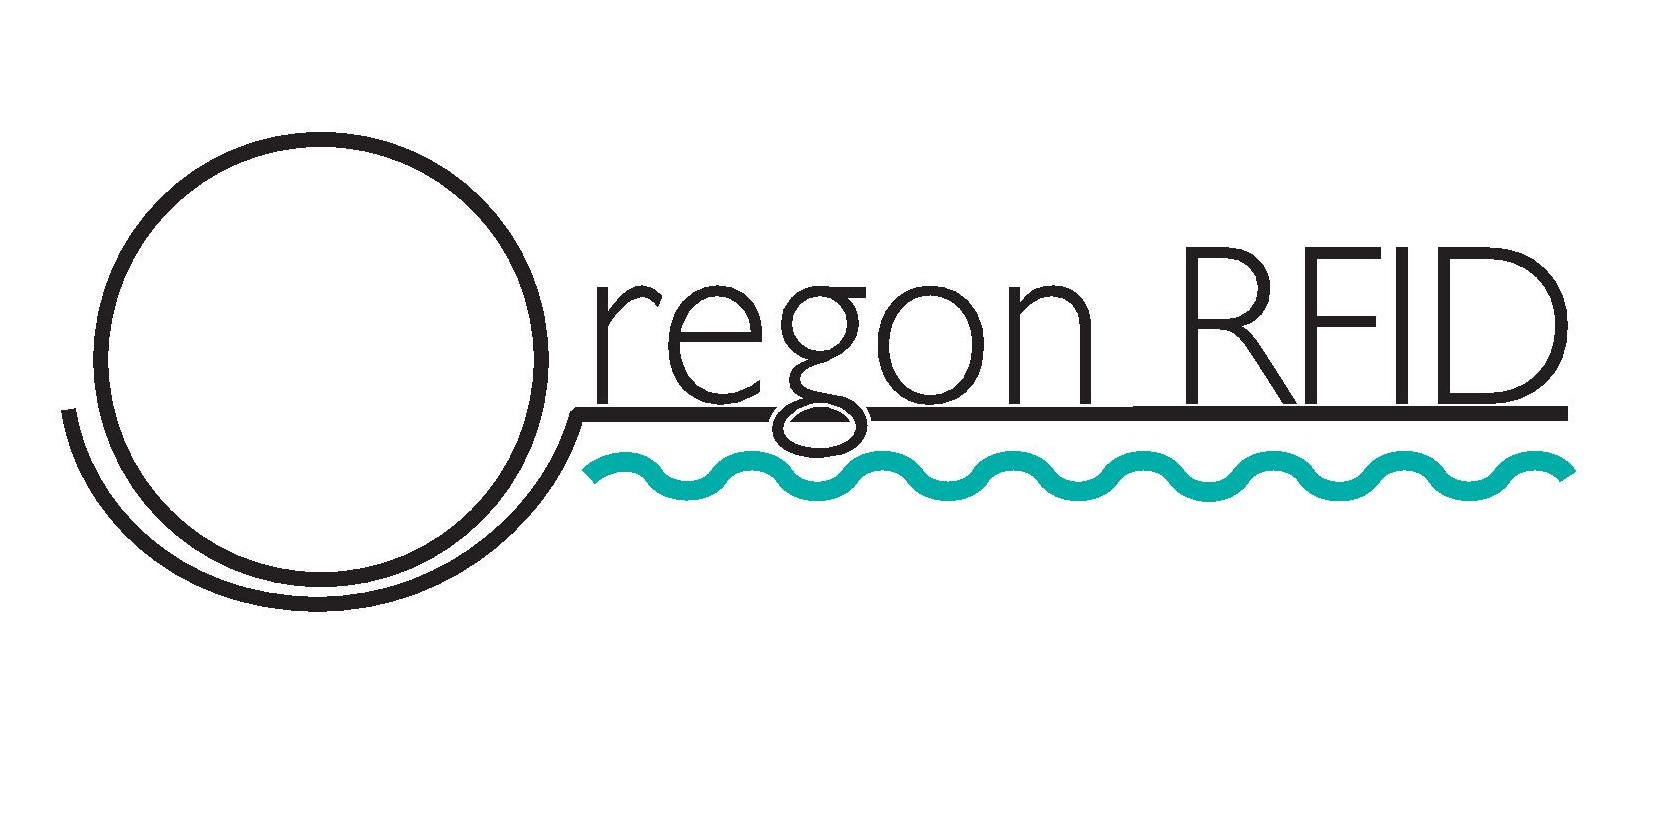 Oregon RFID logo